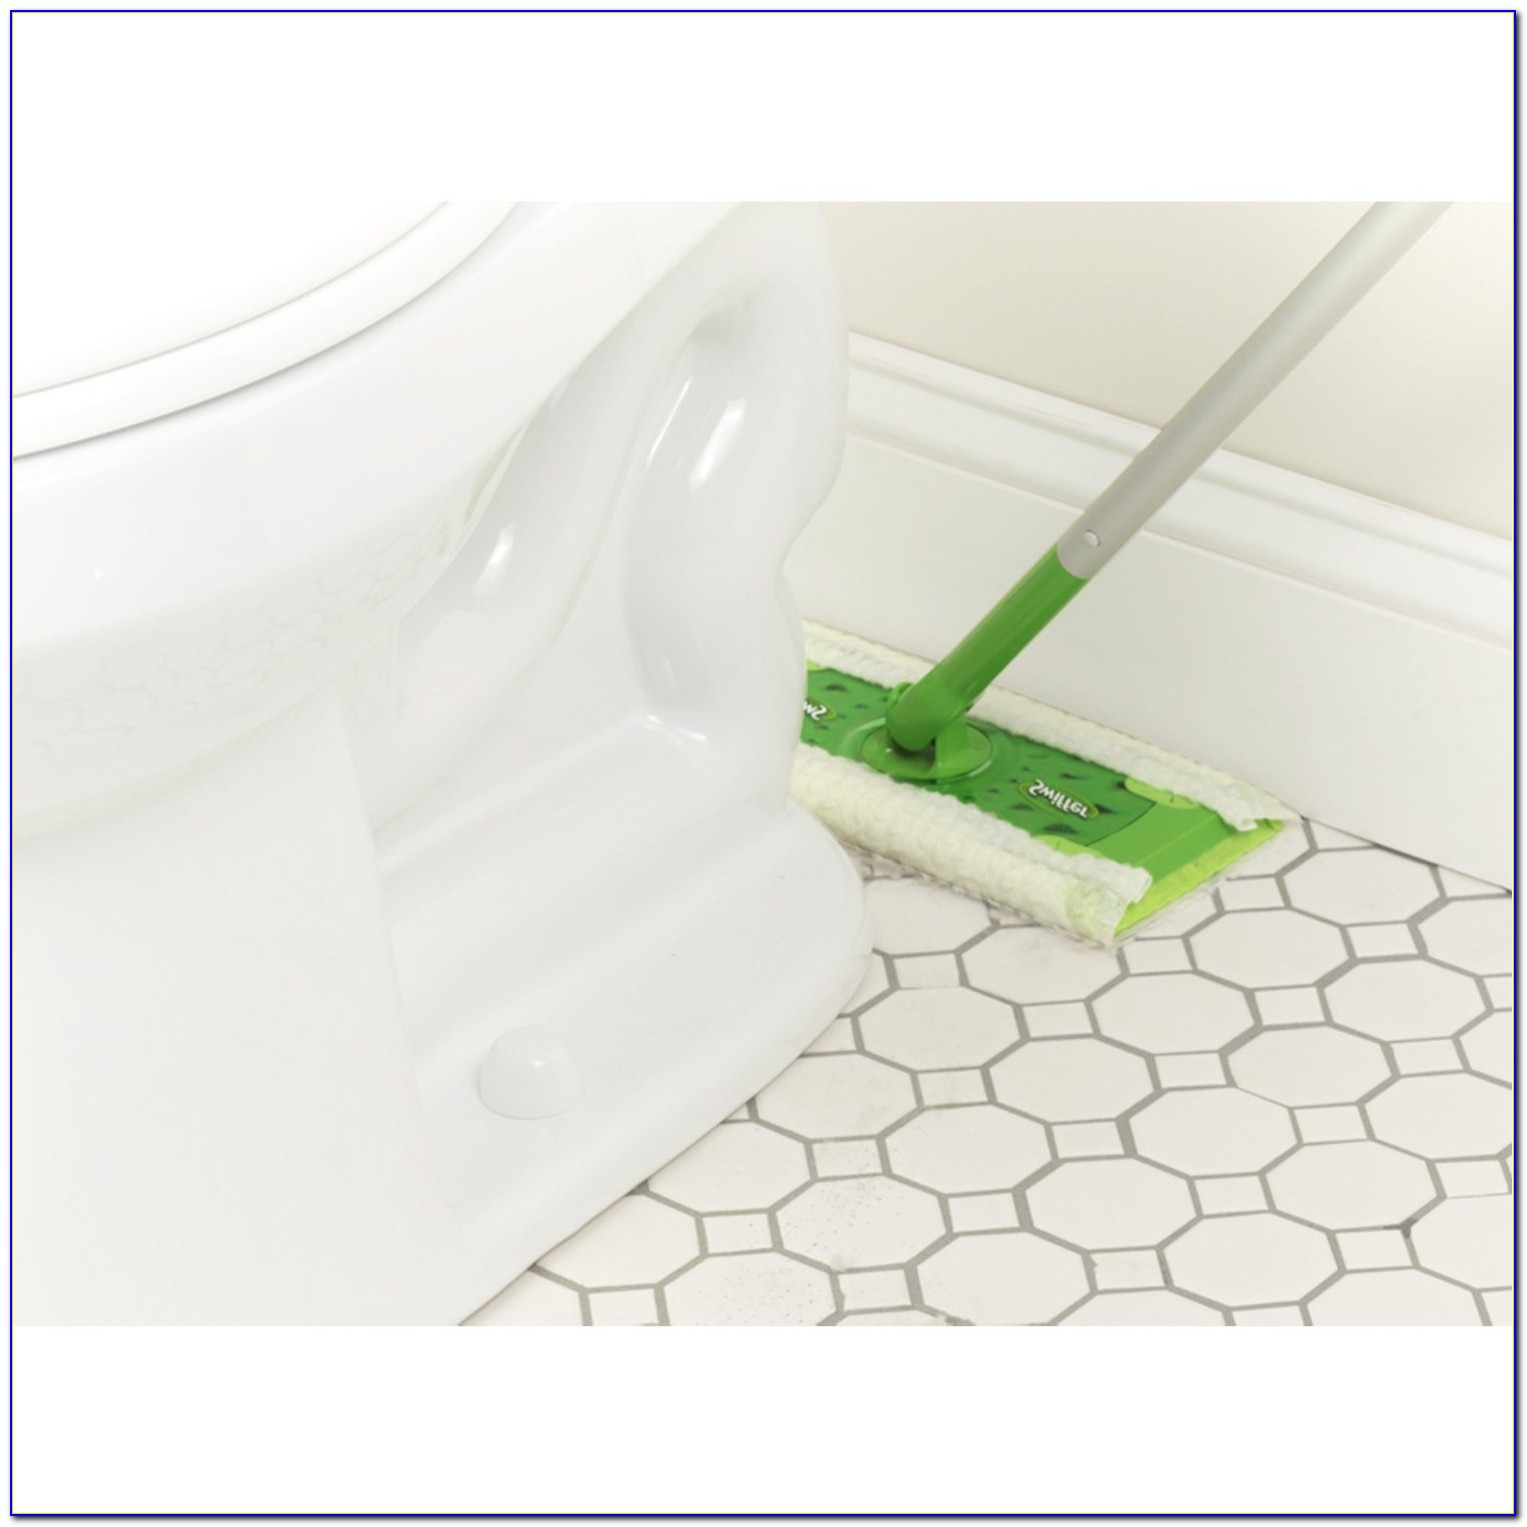 Best mop for tile floors 2014 download page home design for Best wet mop for tile floors